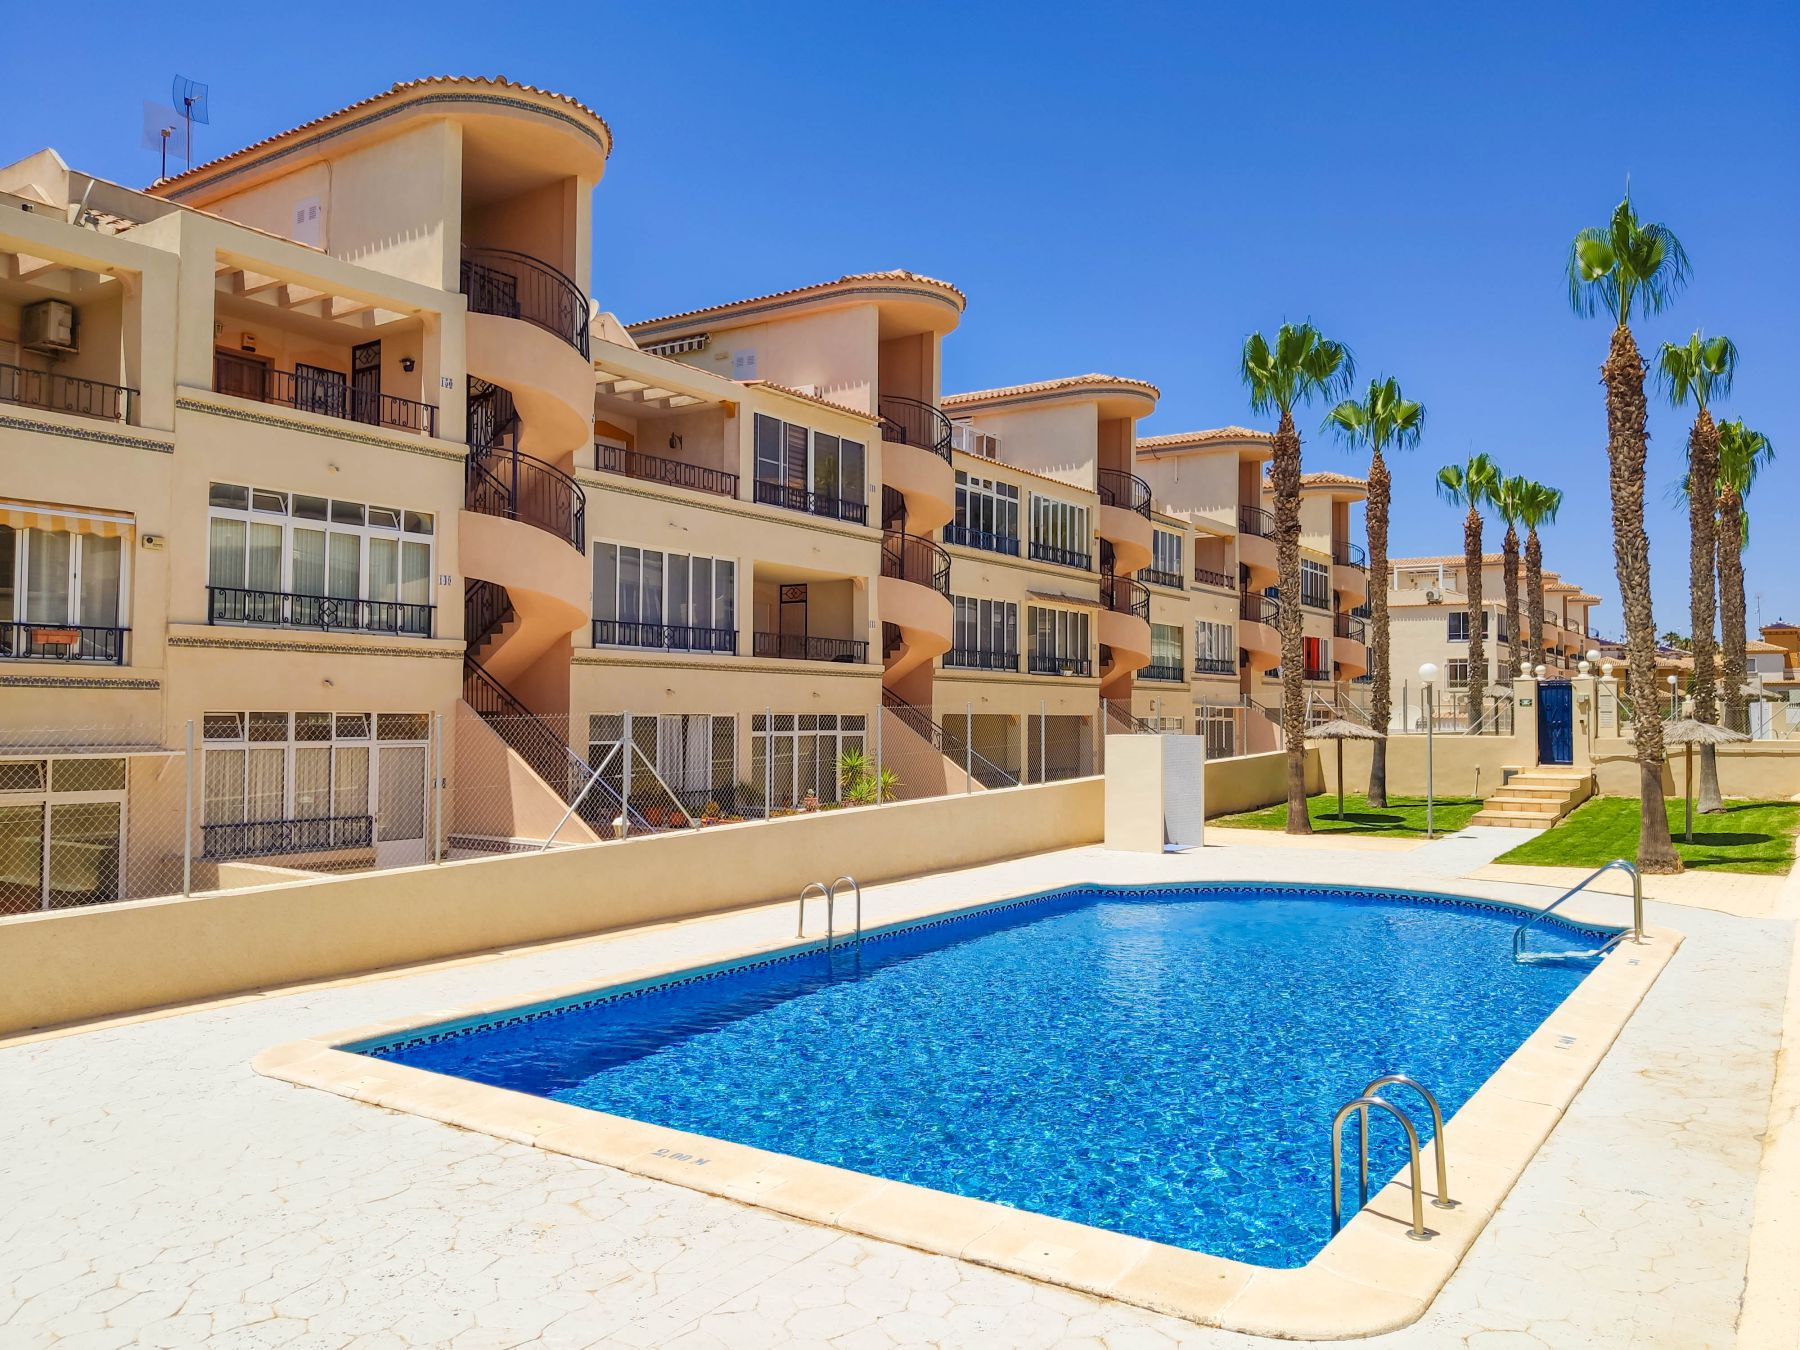 2 Bedrooms Apartment for sale in La Ciñuelica views of the pool in Punta Prima